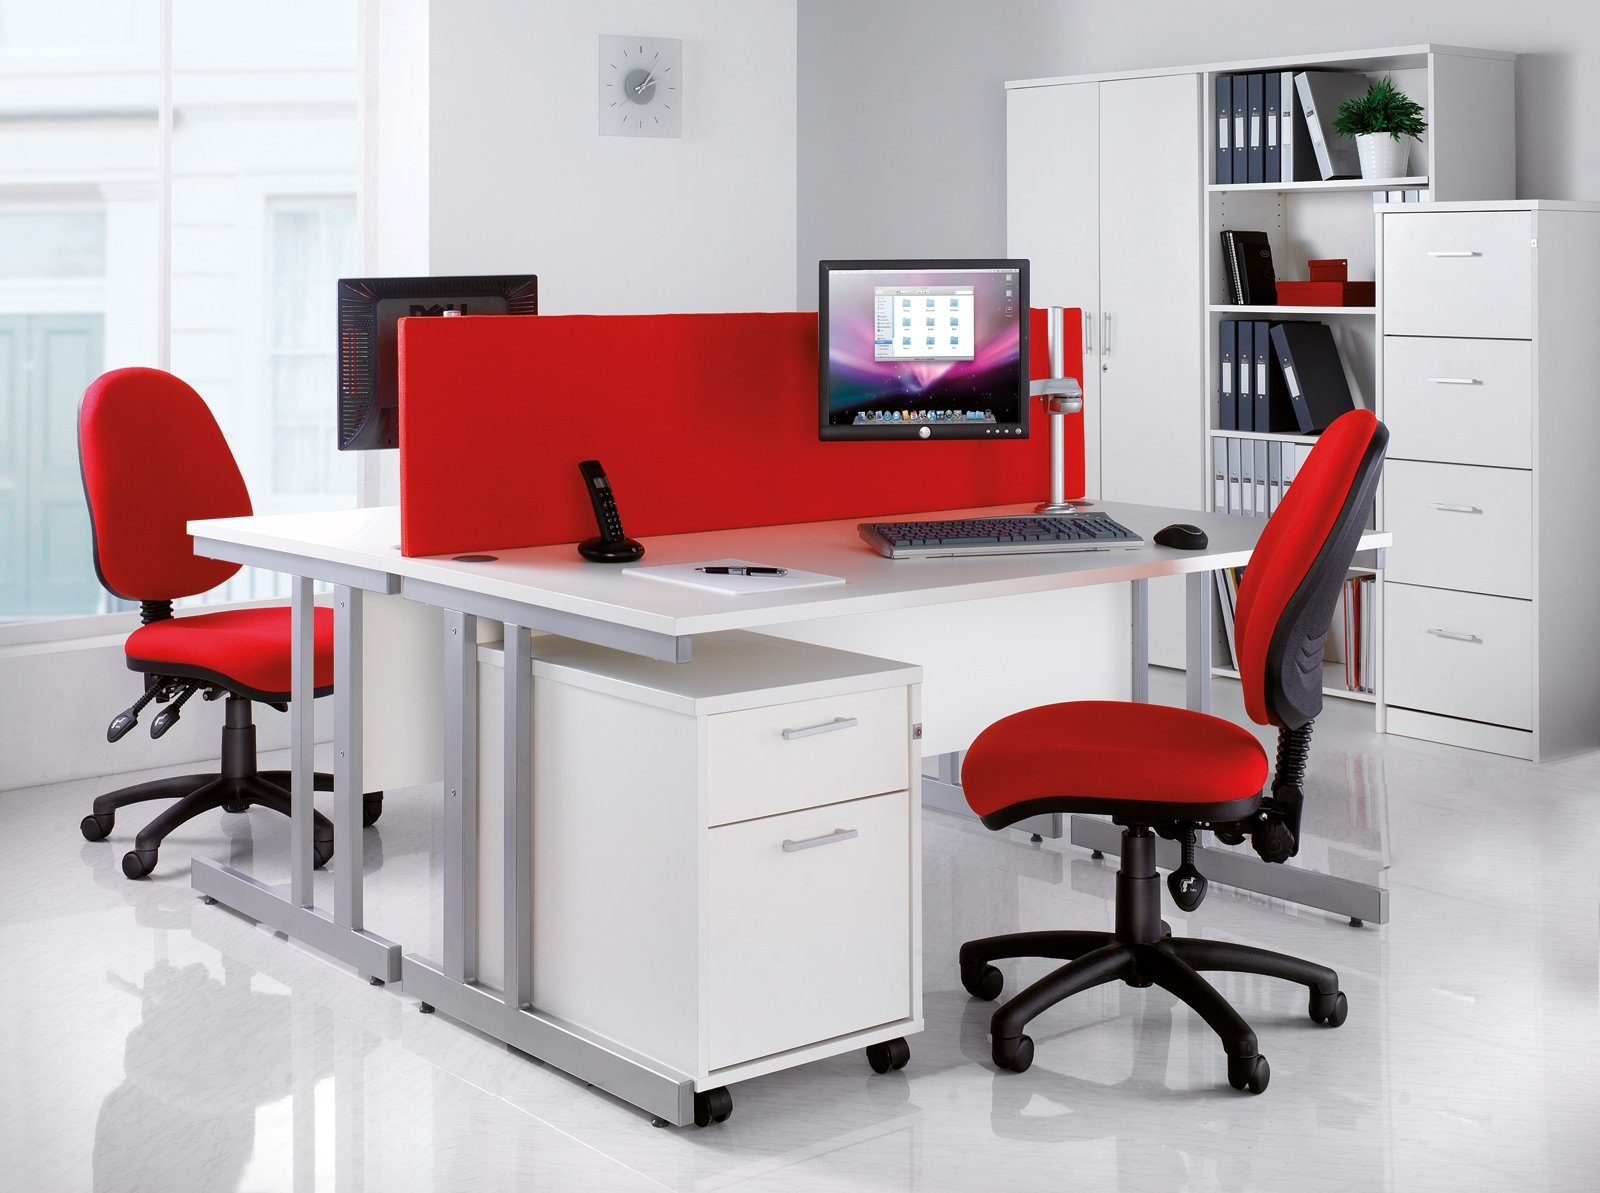 Paypal 1800 Number >> Momento Straight Desk with Cantilever Leg 1000 x 800mm